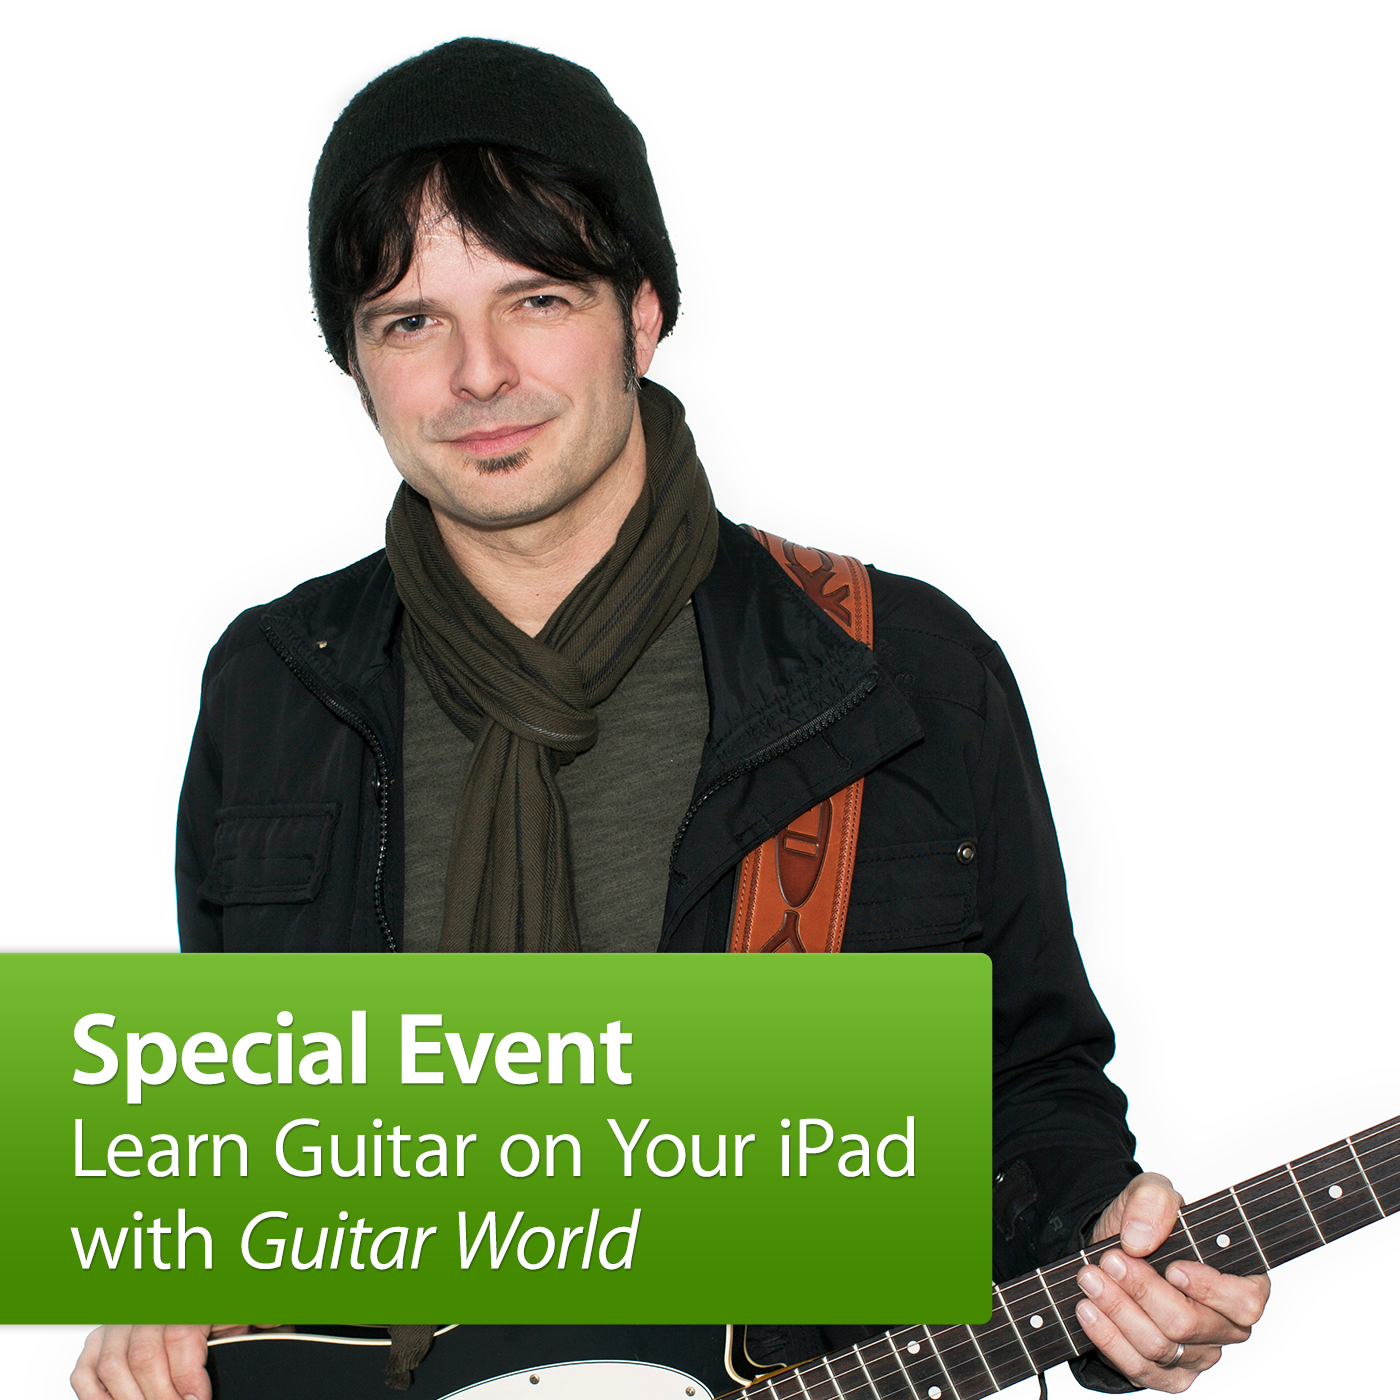 Learn Guitar on Your iPad with Guitar World: Special Event